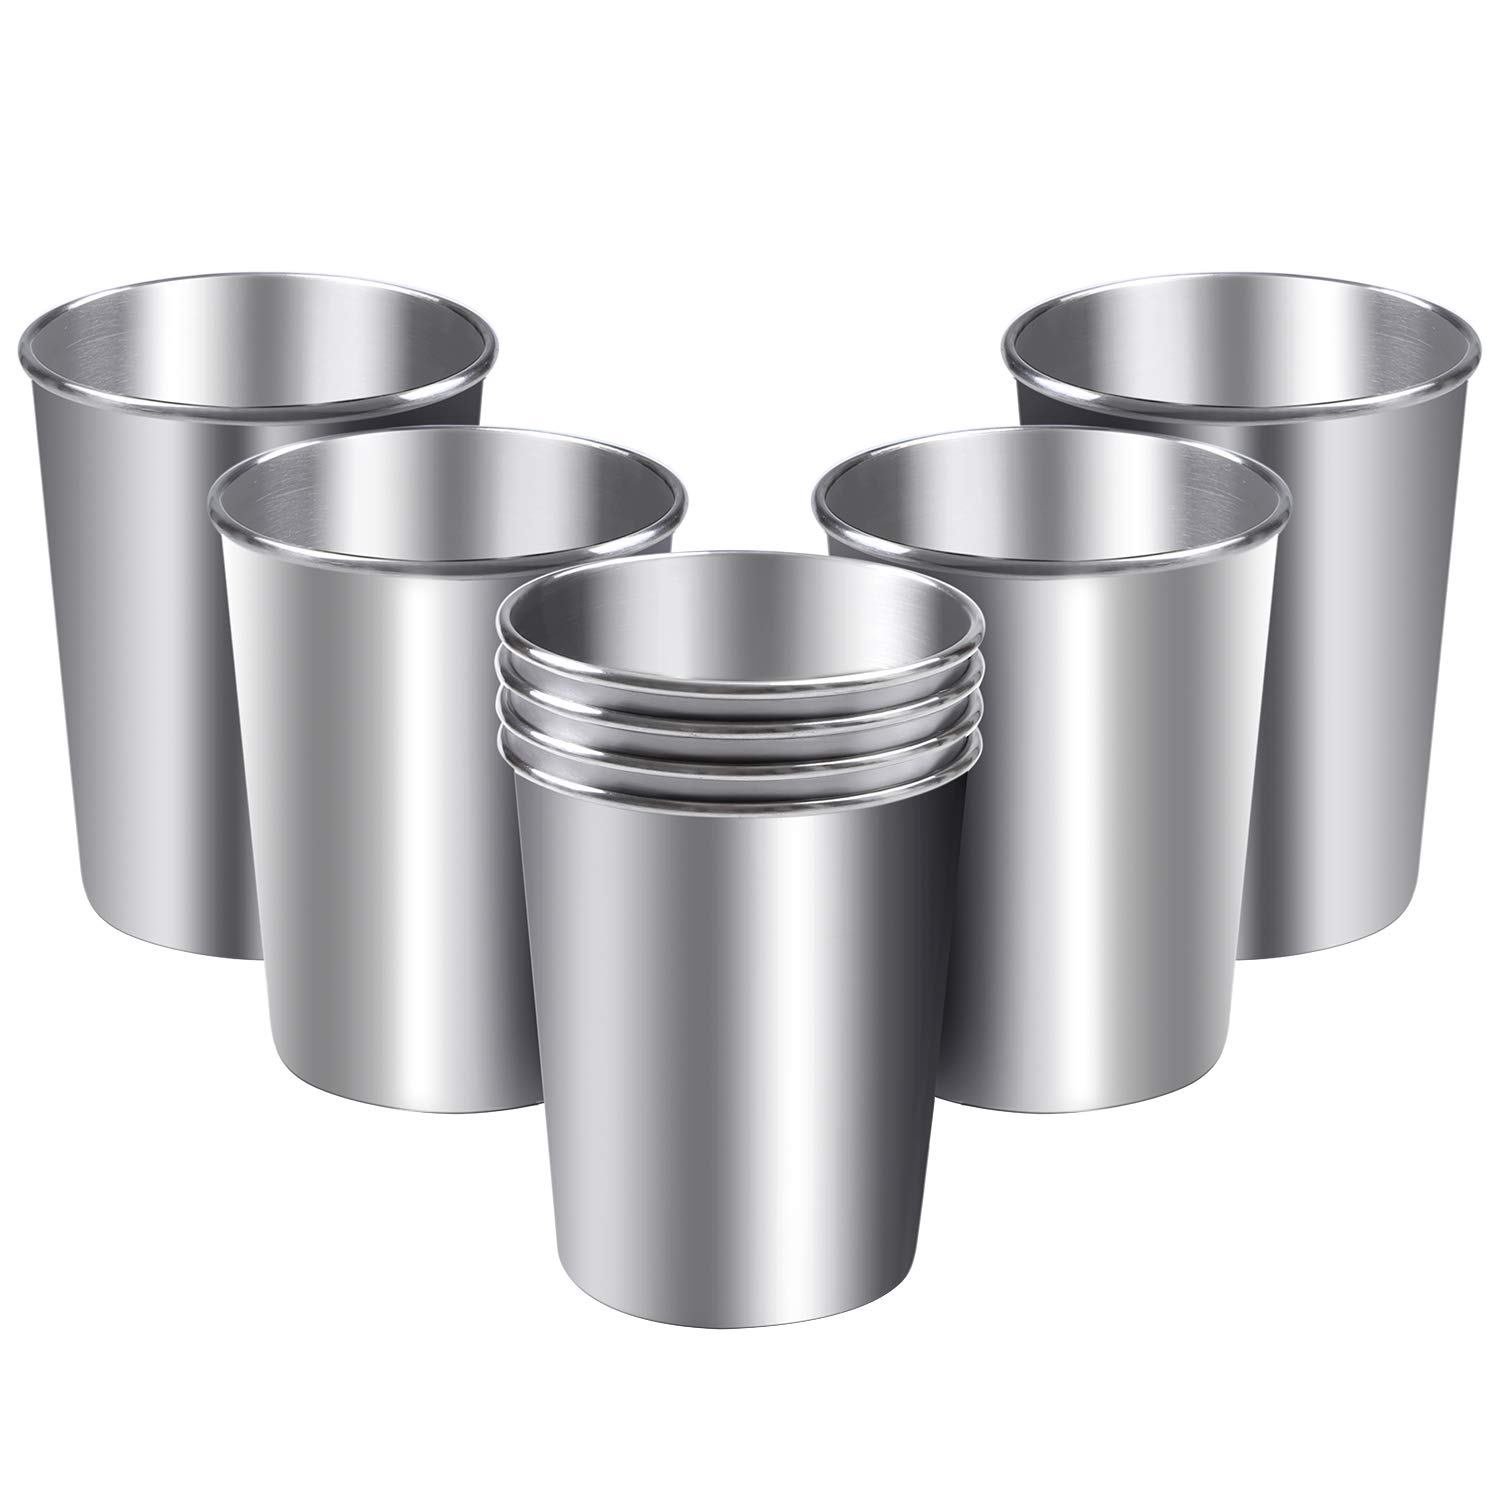 Aneco 8 Pack 8 Ounce Stainless Steel Cups Shatterproof Pint Cup Tumblers Unbreakable Metal Drinking Glasses